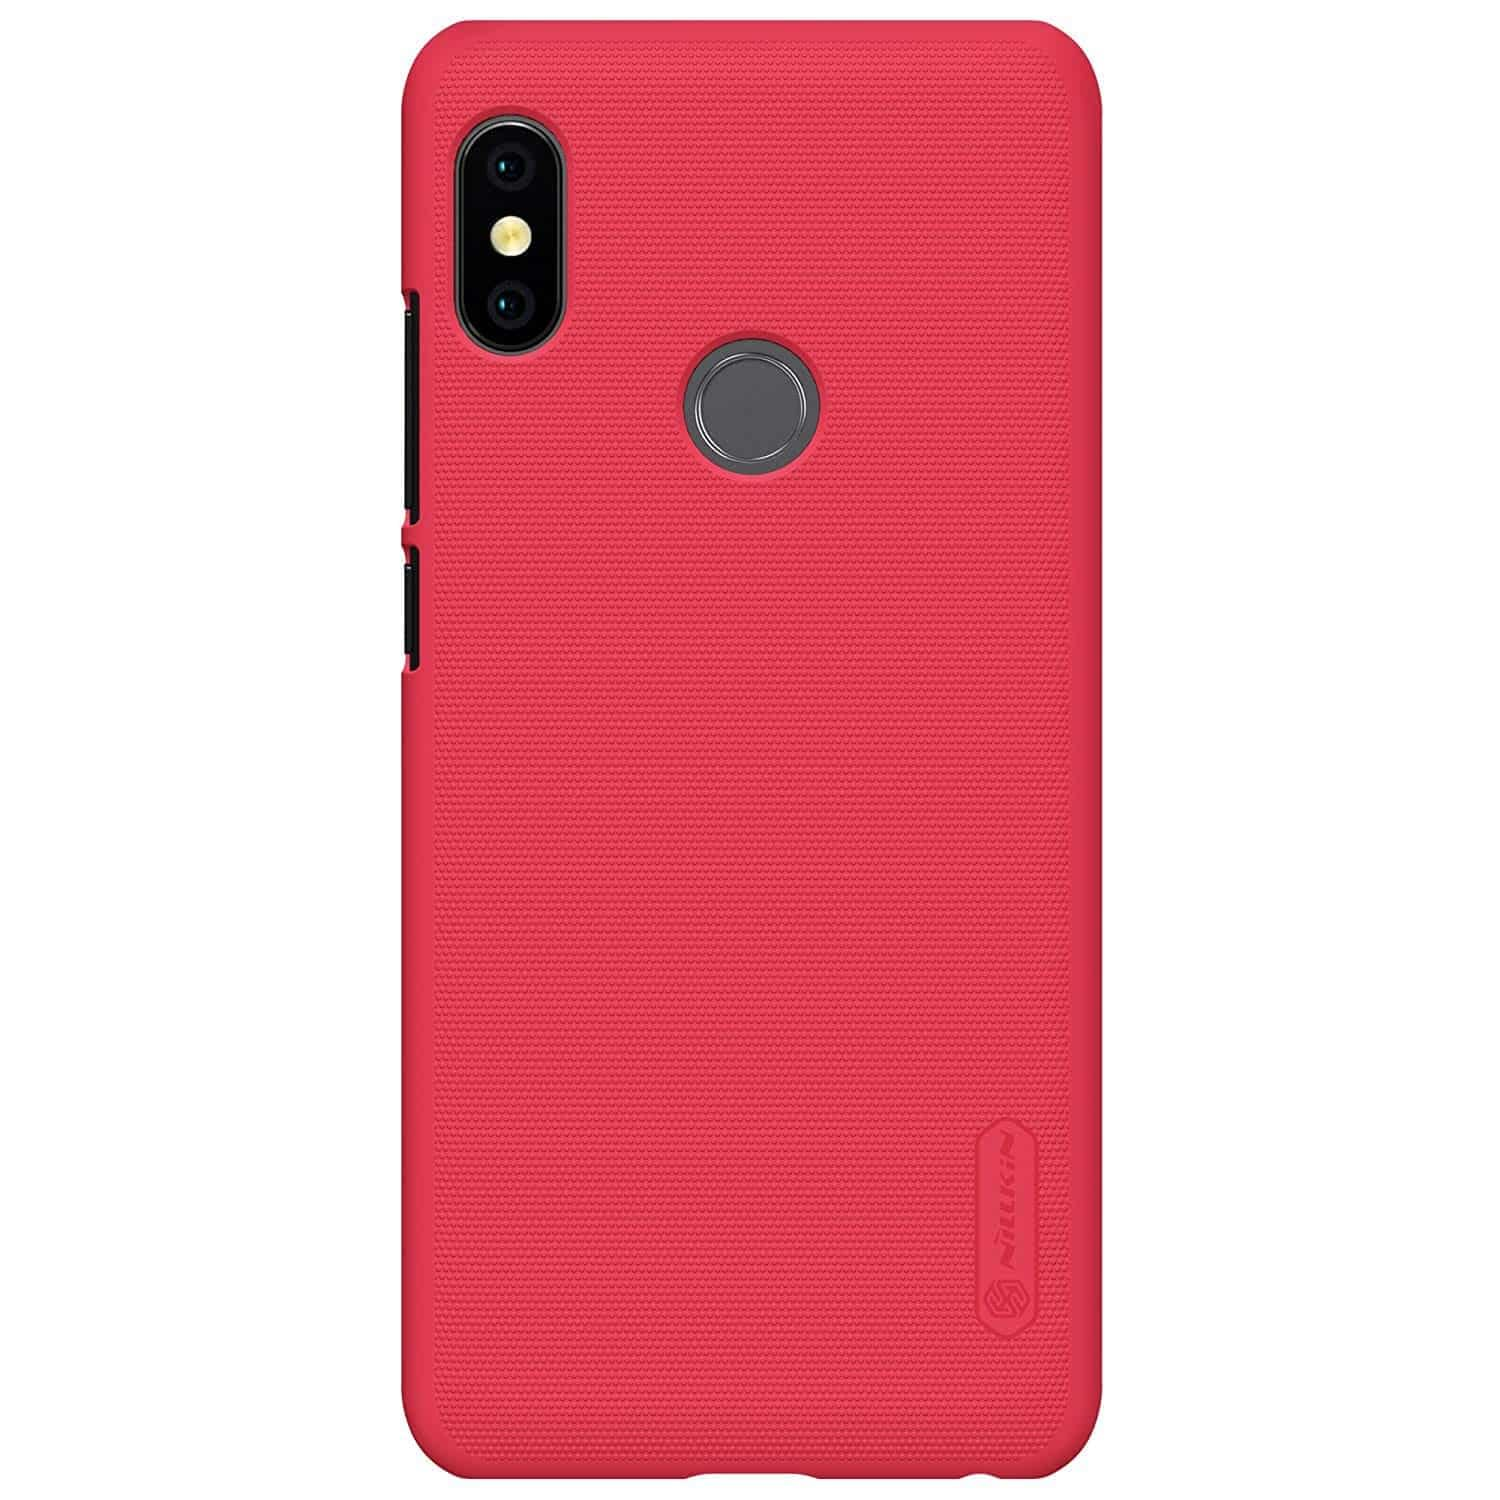 low priced b5873 01fa5 Nillkin Super Frosted Shield Hard Back Cover Case for Redmi Note 5 Pro  (Red) - www.buyforfamily.com